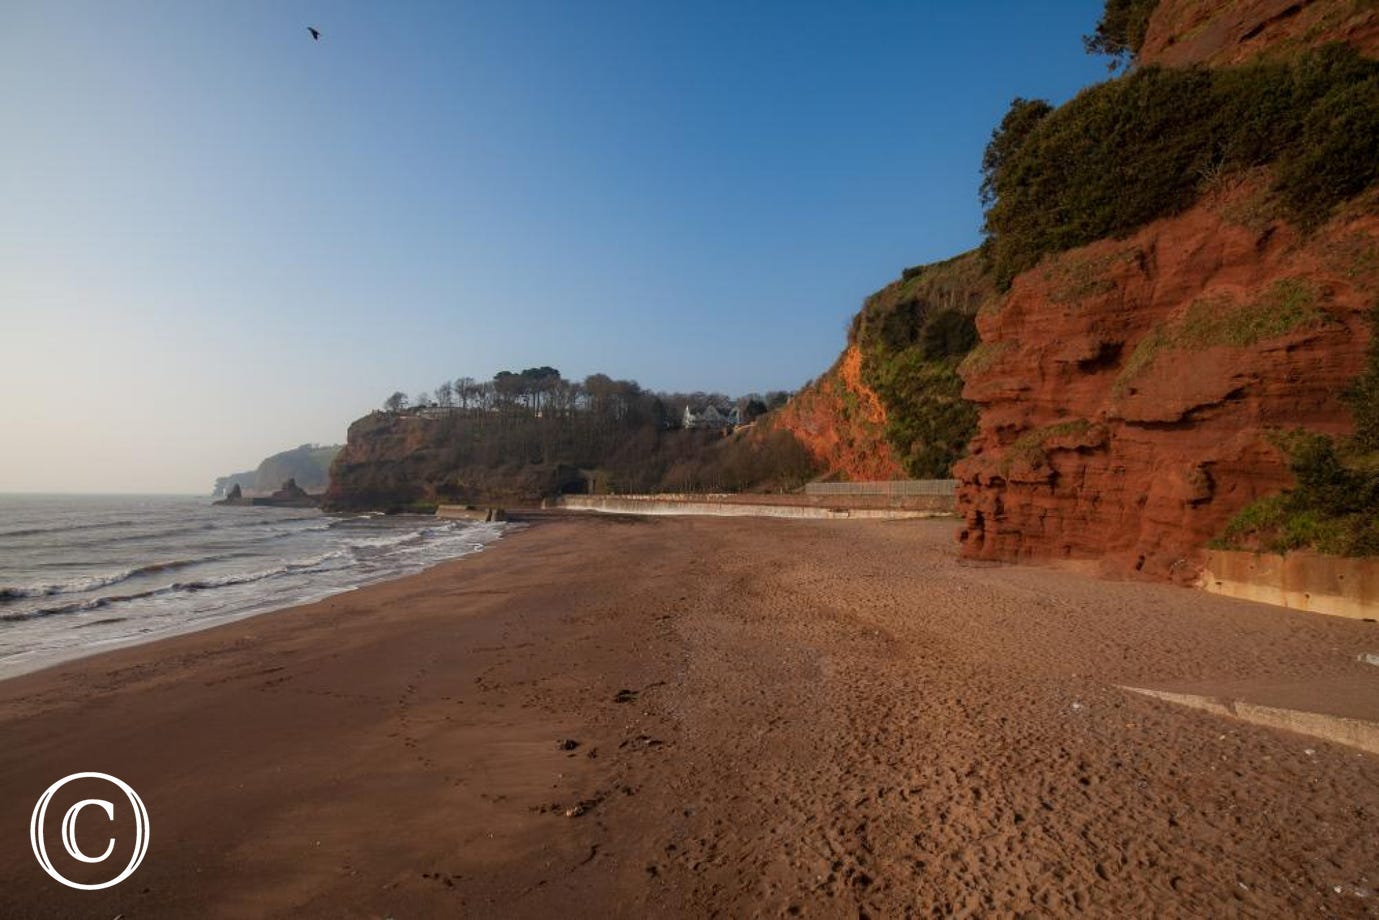 Cliffside Beach Walk from our Dawlish Self-Catering Holiday Apartment